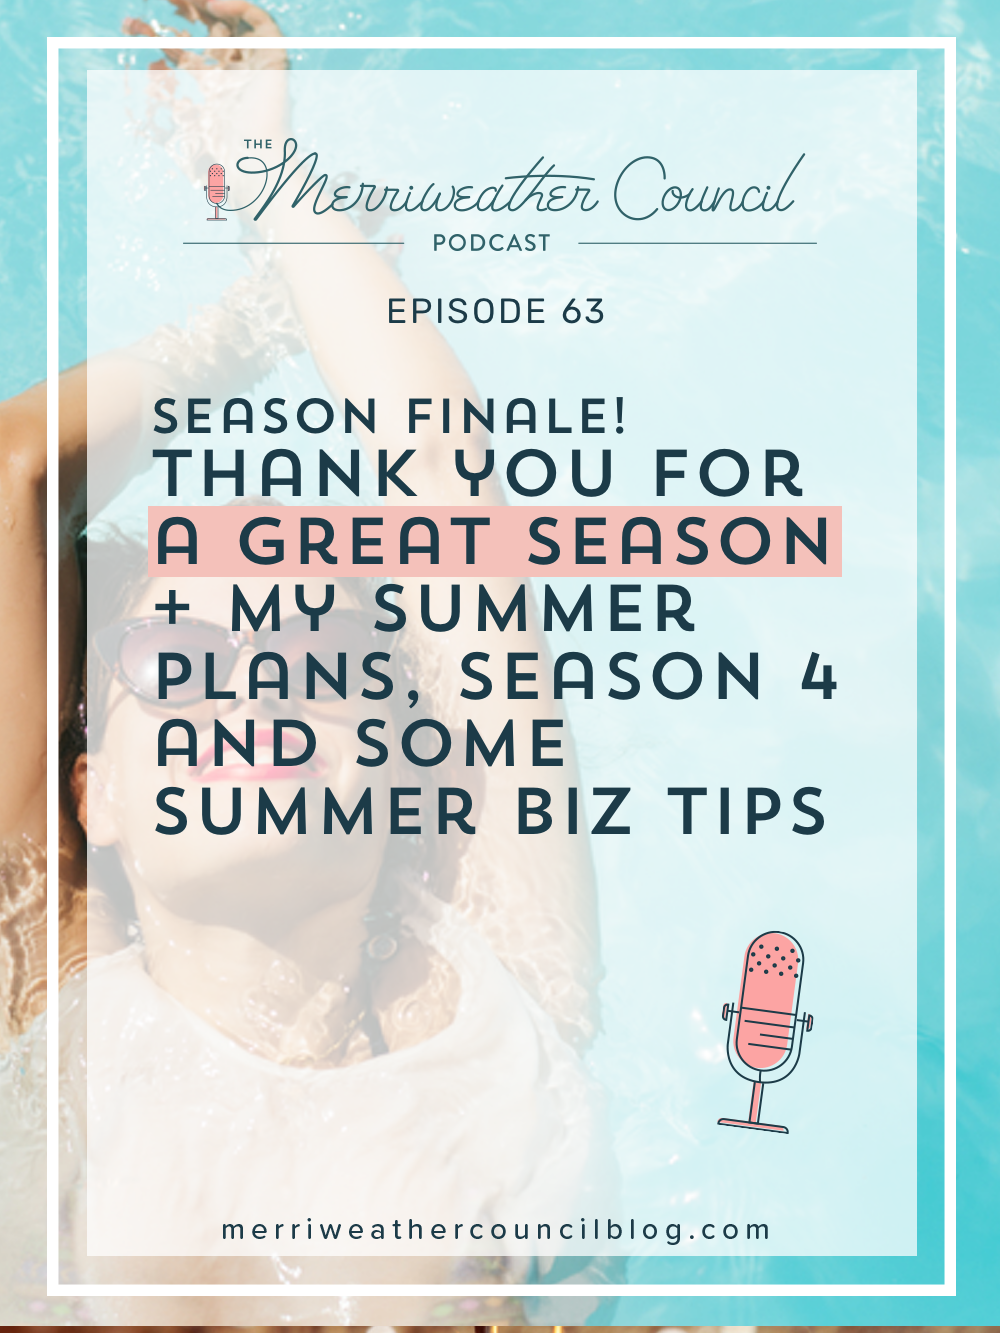 The end of a podcast season is always a little bitter sweet. It's so fun for me knowing that two times per week, you and I are able to connect in a magical way thanks to invisible internet forces. Enjoy the season 3 finale. t's really just see ya later because I'll be back hopefully this fall with season 4! | The Merriweather Council Podcast